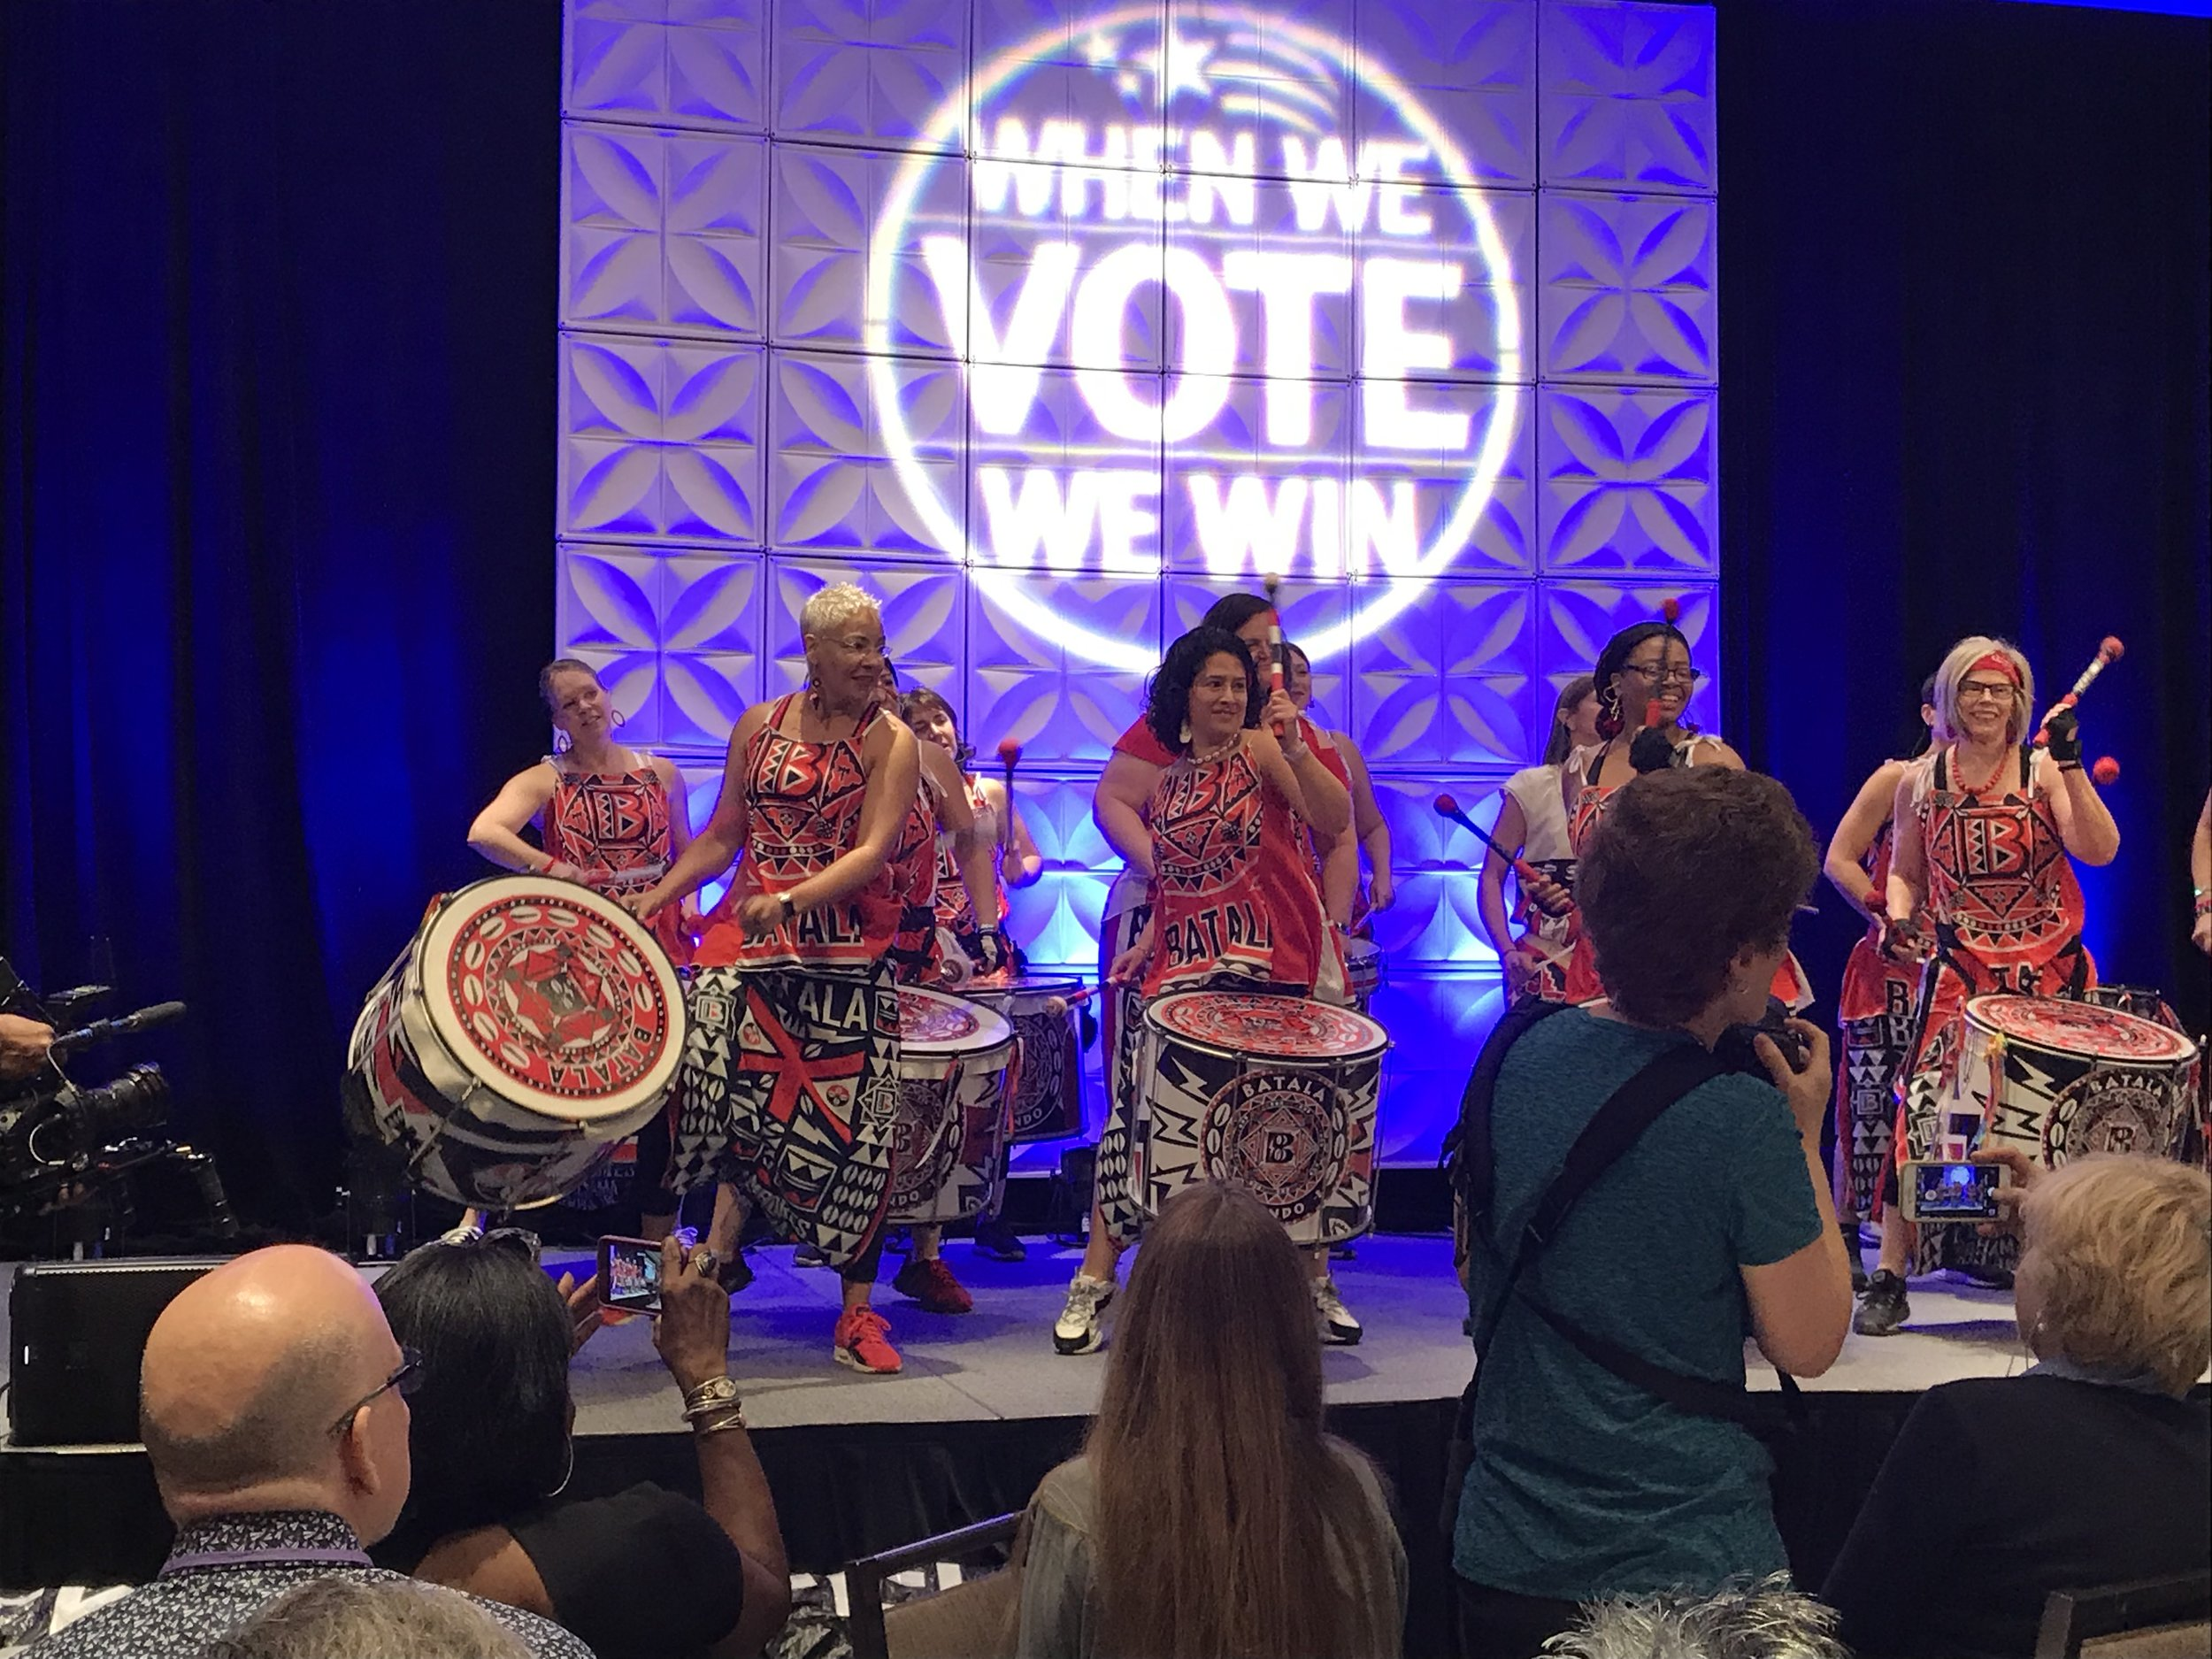 The amazing women's drum corps performing at the Virginia Women's Summit. (June 2019)